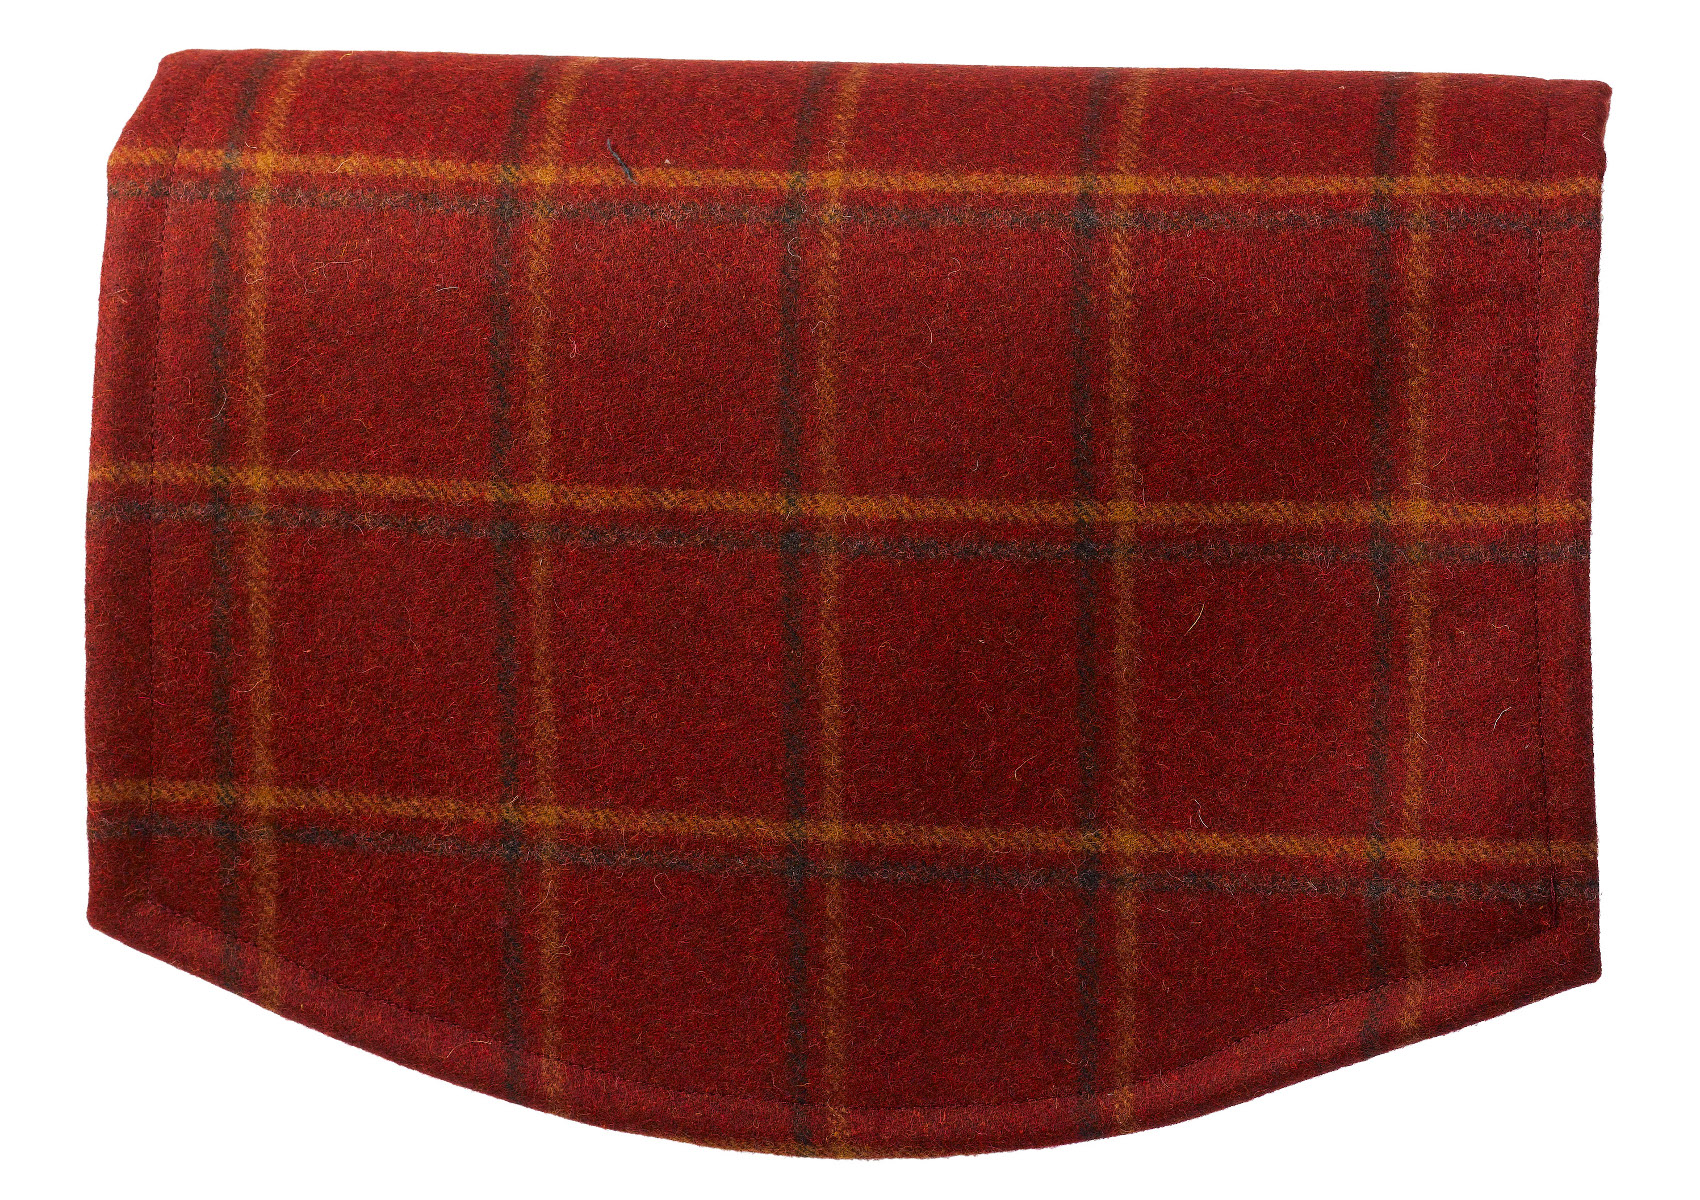 chair covers scotland makeup stools chairs single antimacassar chairback pure new wool scottish tweed